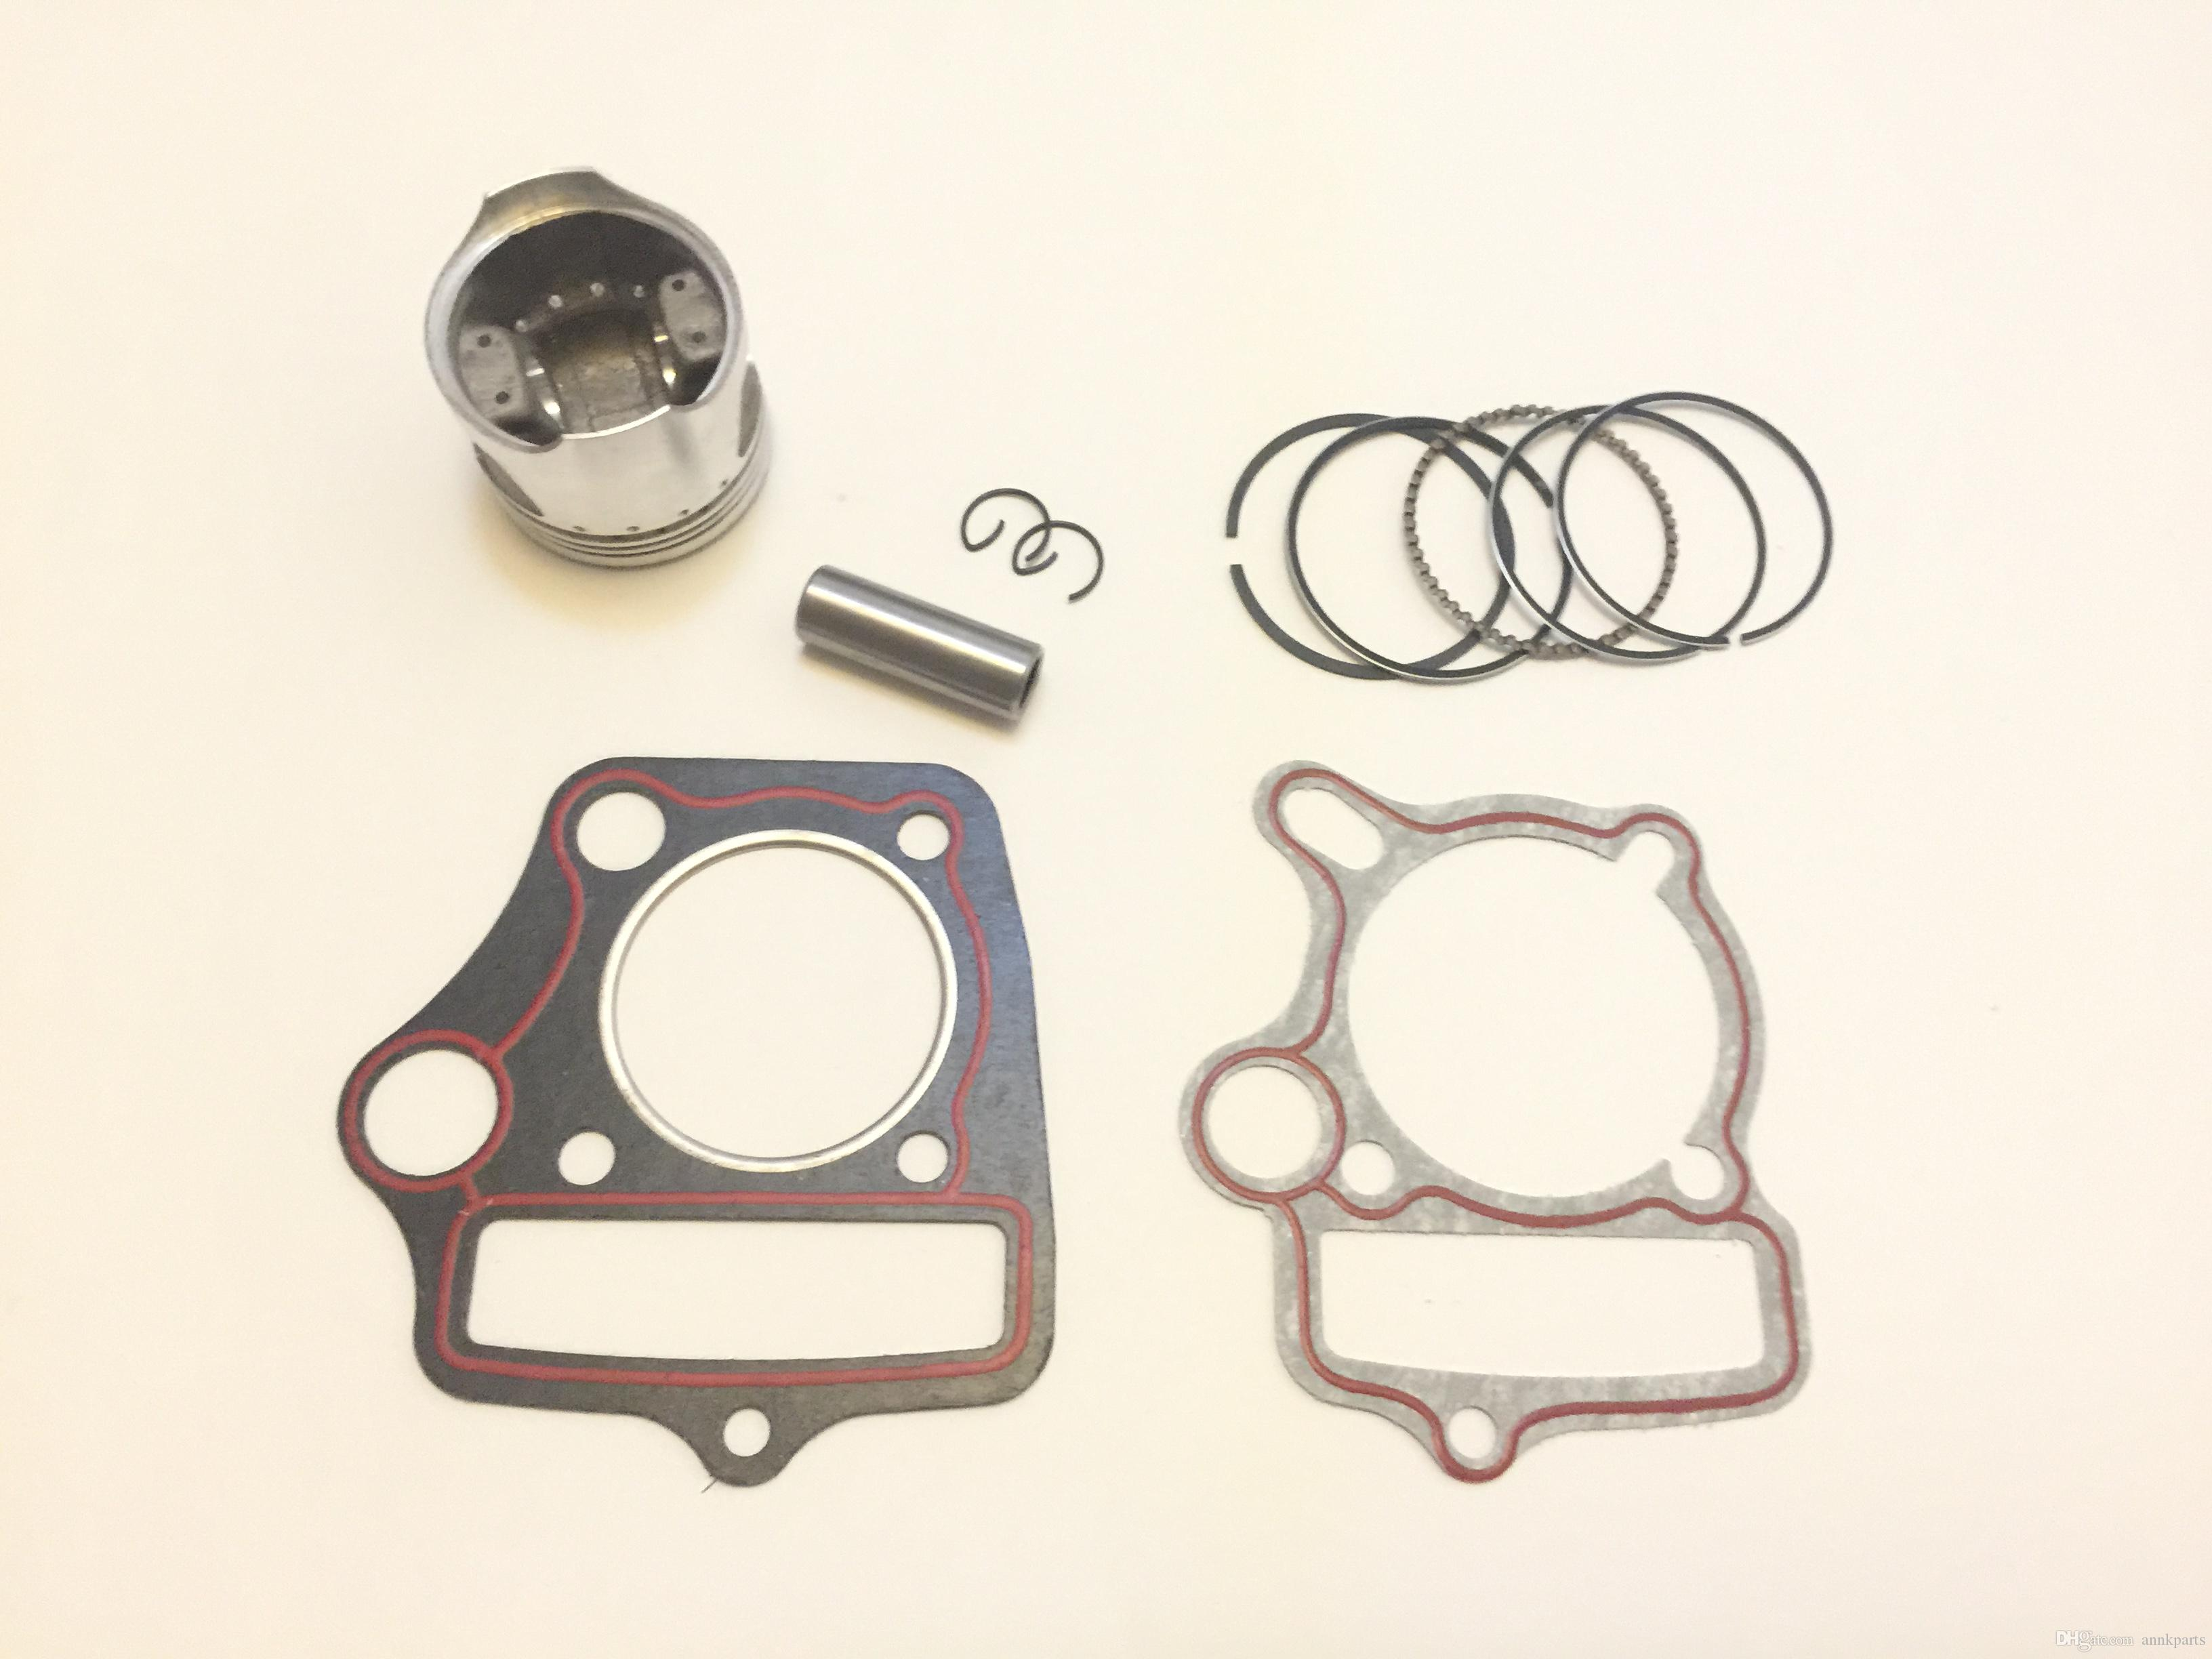 Dirt Pit Bike Engine Piston Kit with gaskets 70cc 90cc 47mm HONDA Loncin Lifan